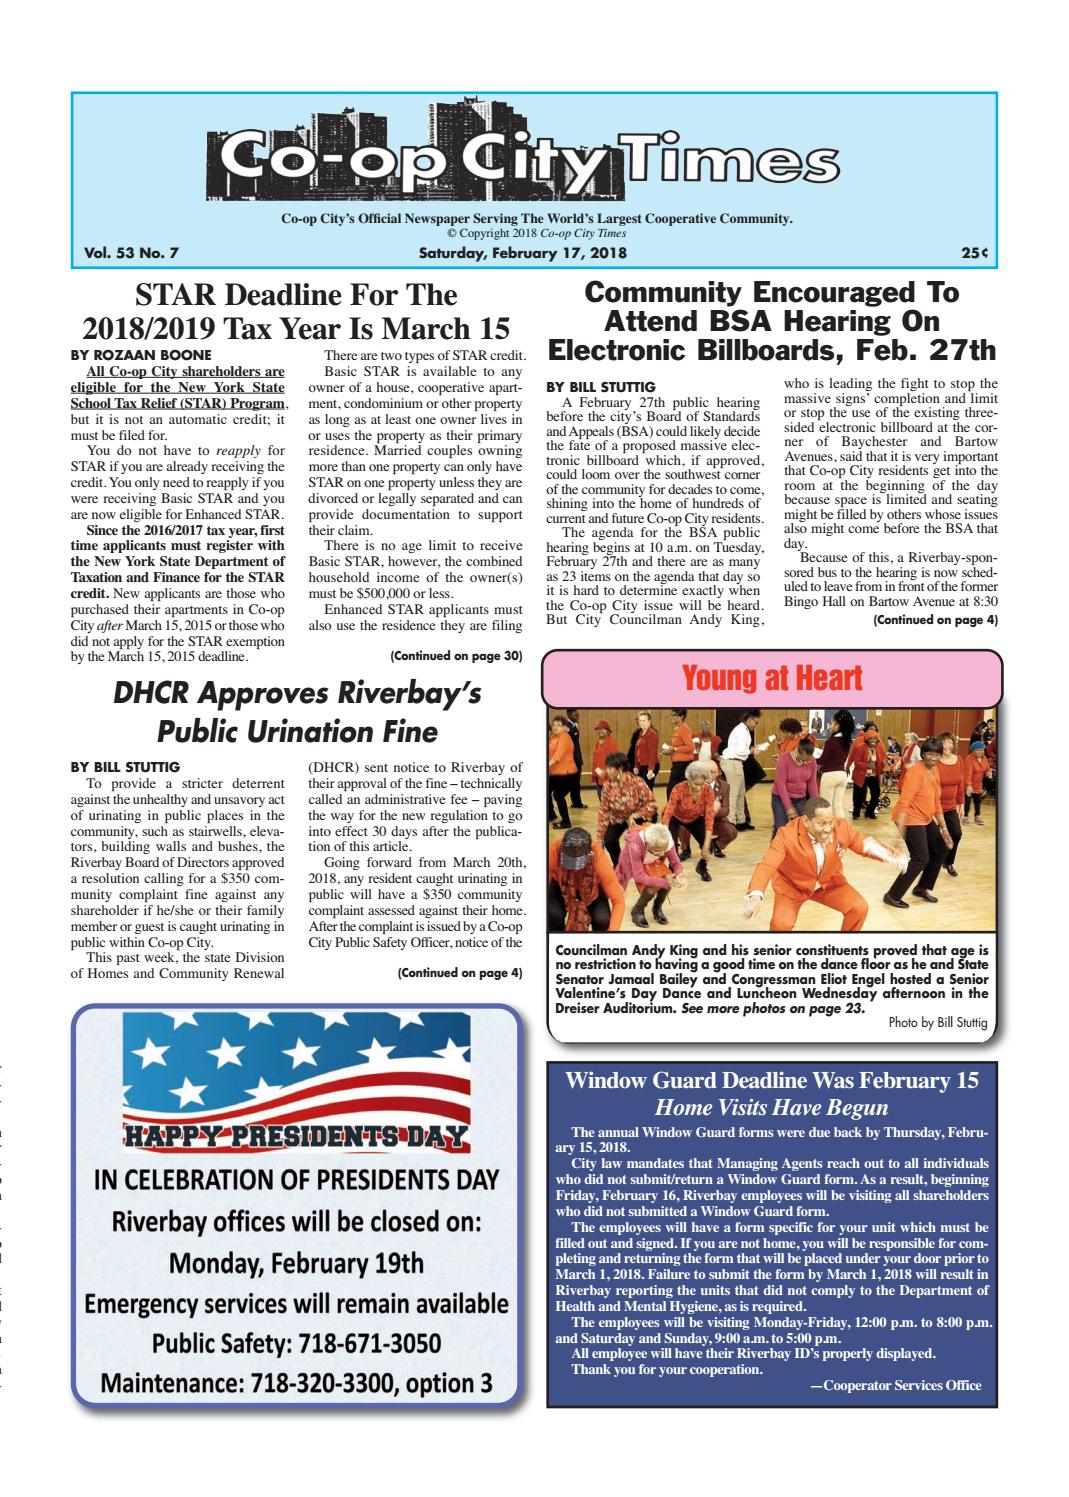 Co-op City Times 02/17/18 by Co-op City Times - issuu